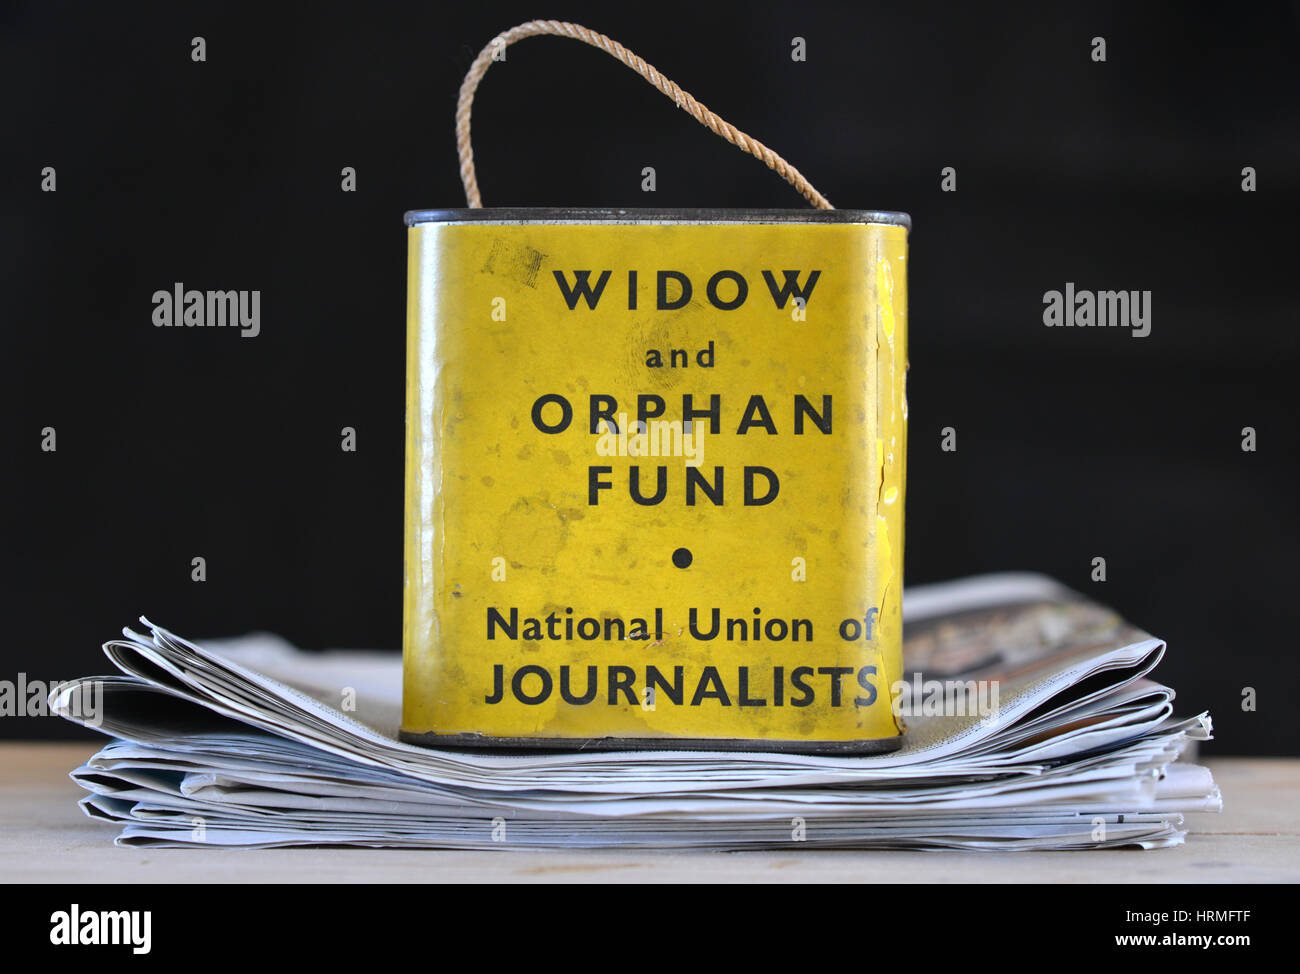 Vintage NUJ collecting tin for Widow and Orphan fund. - Stock Image